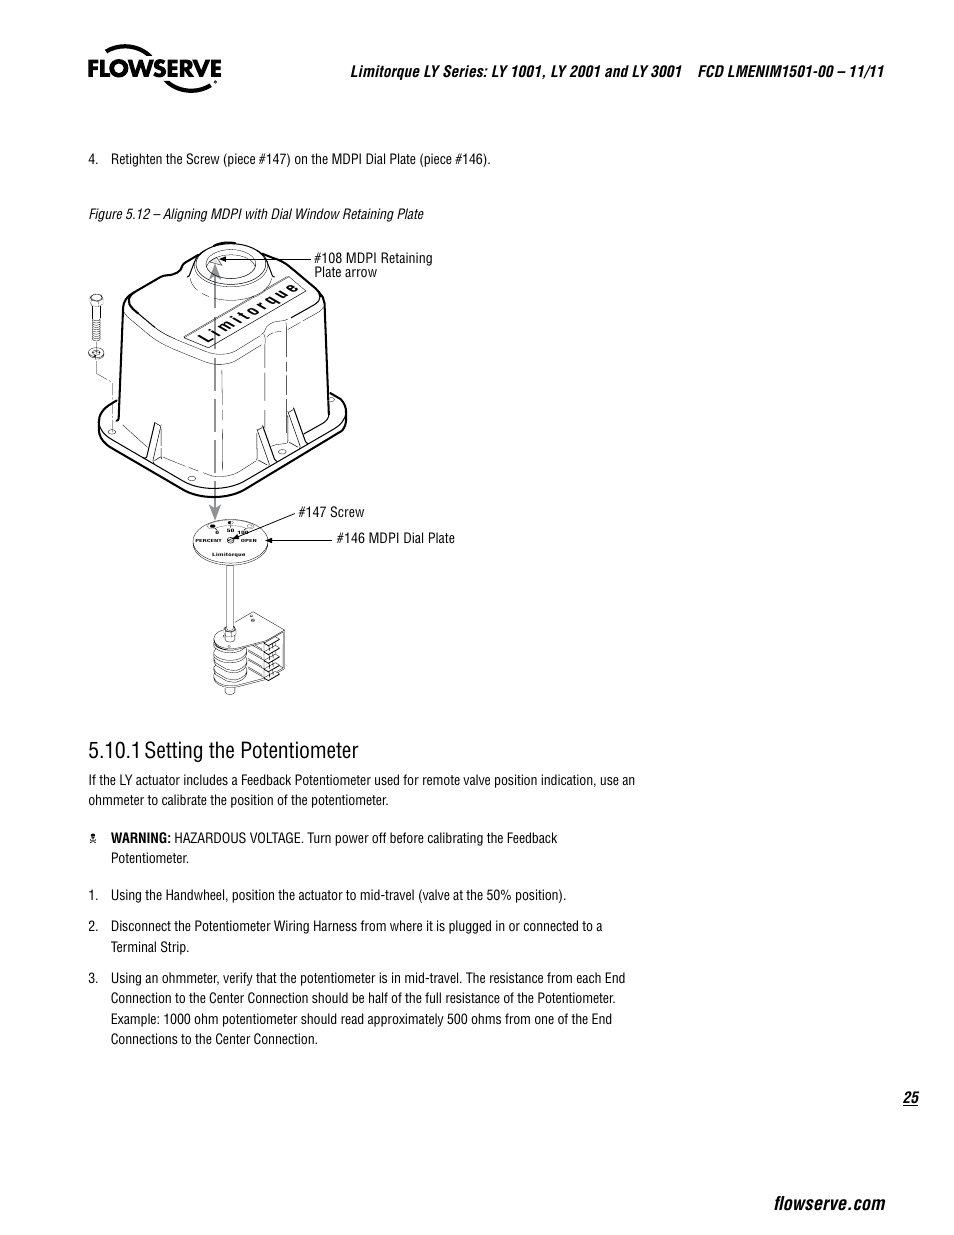 1 Setting The Potentiometer Flowserve Ly Series Limitorque User Wiring Diagram Manual Page 25 64